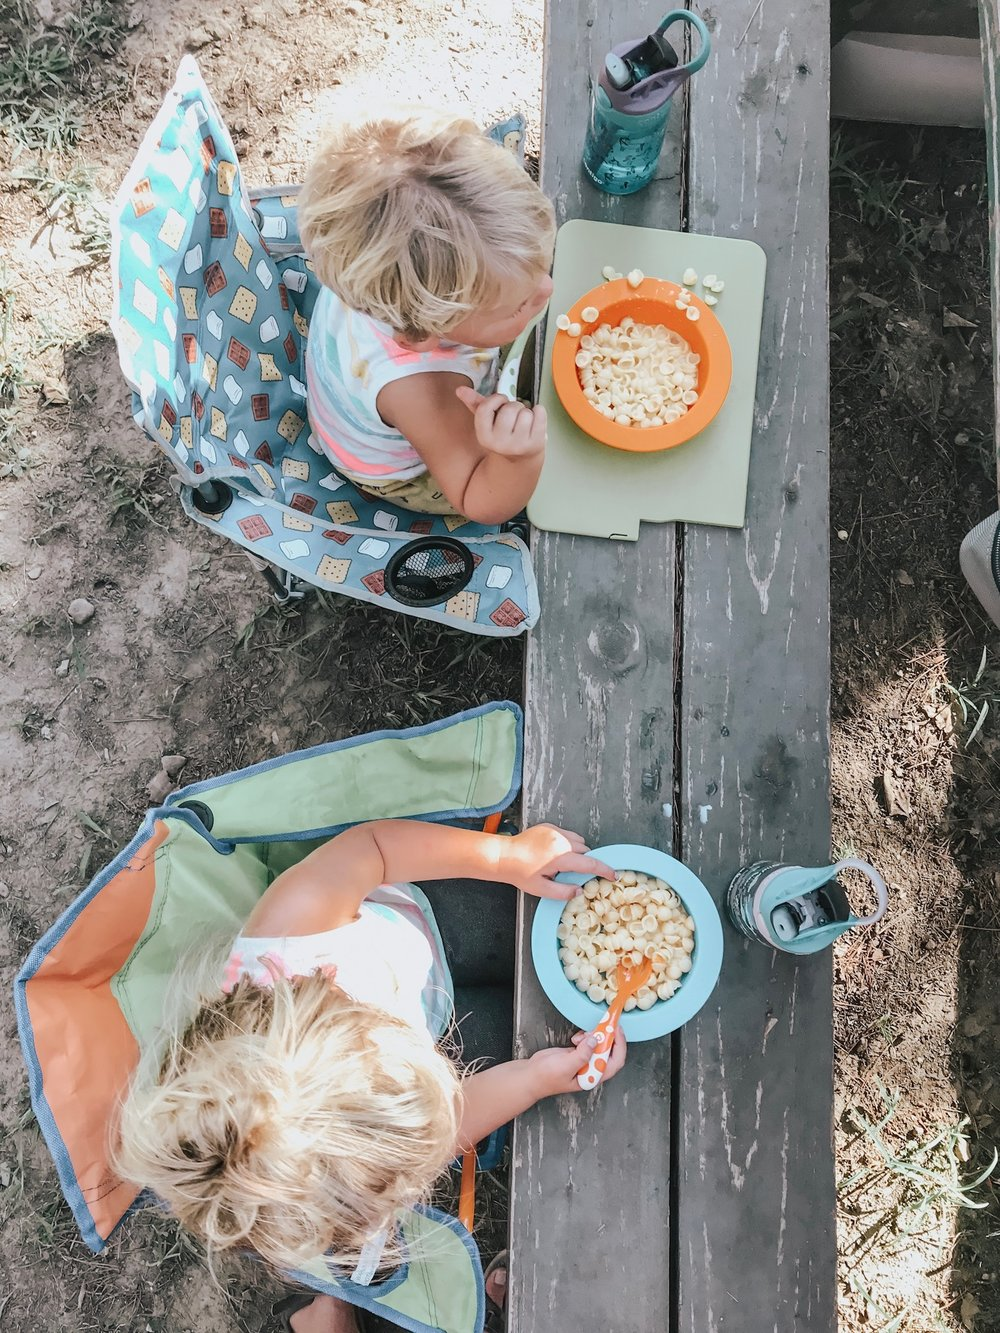 Here are the kiddies with their toddler camping chairs eating mac-n-cheese